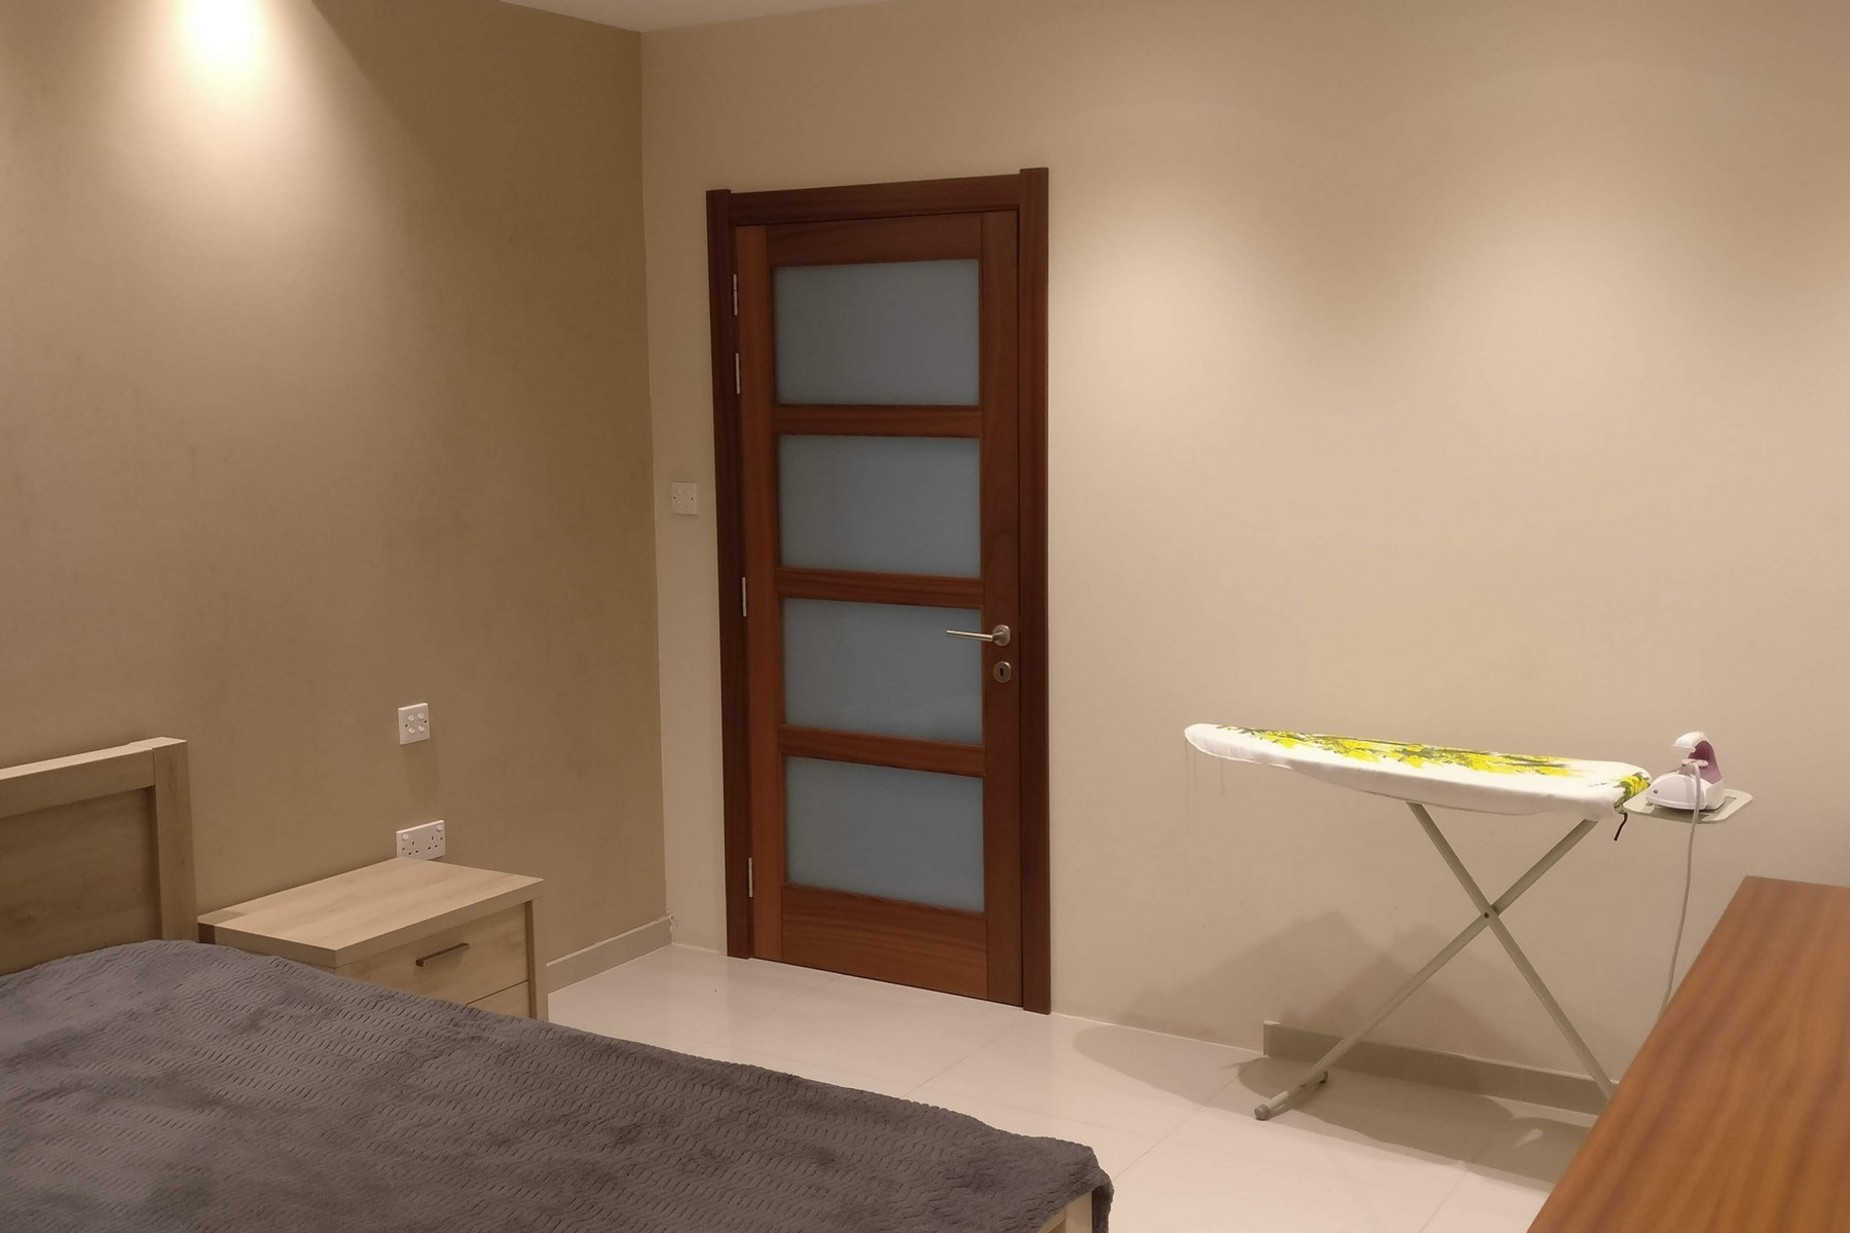 3 bed Apartment For Rent in Mosta, Mosta - thumb 7